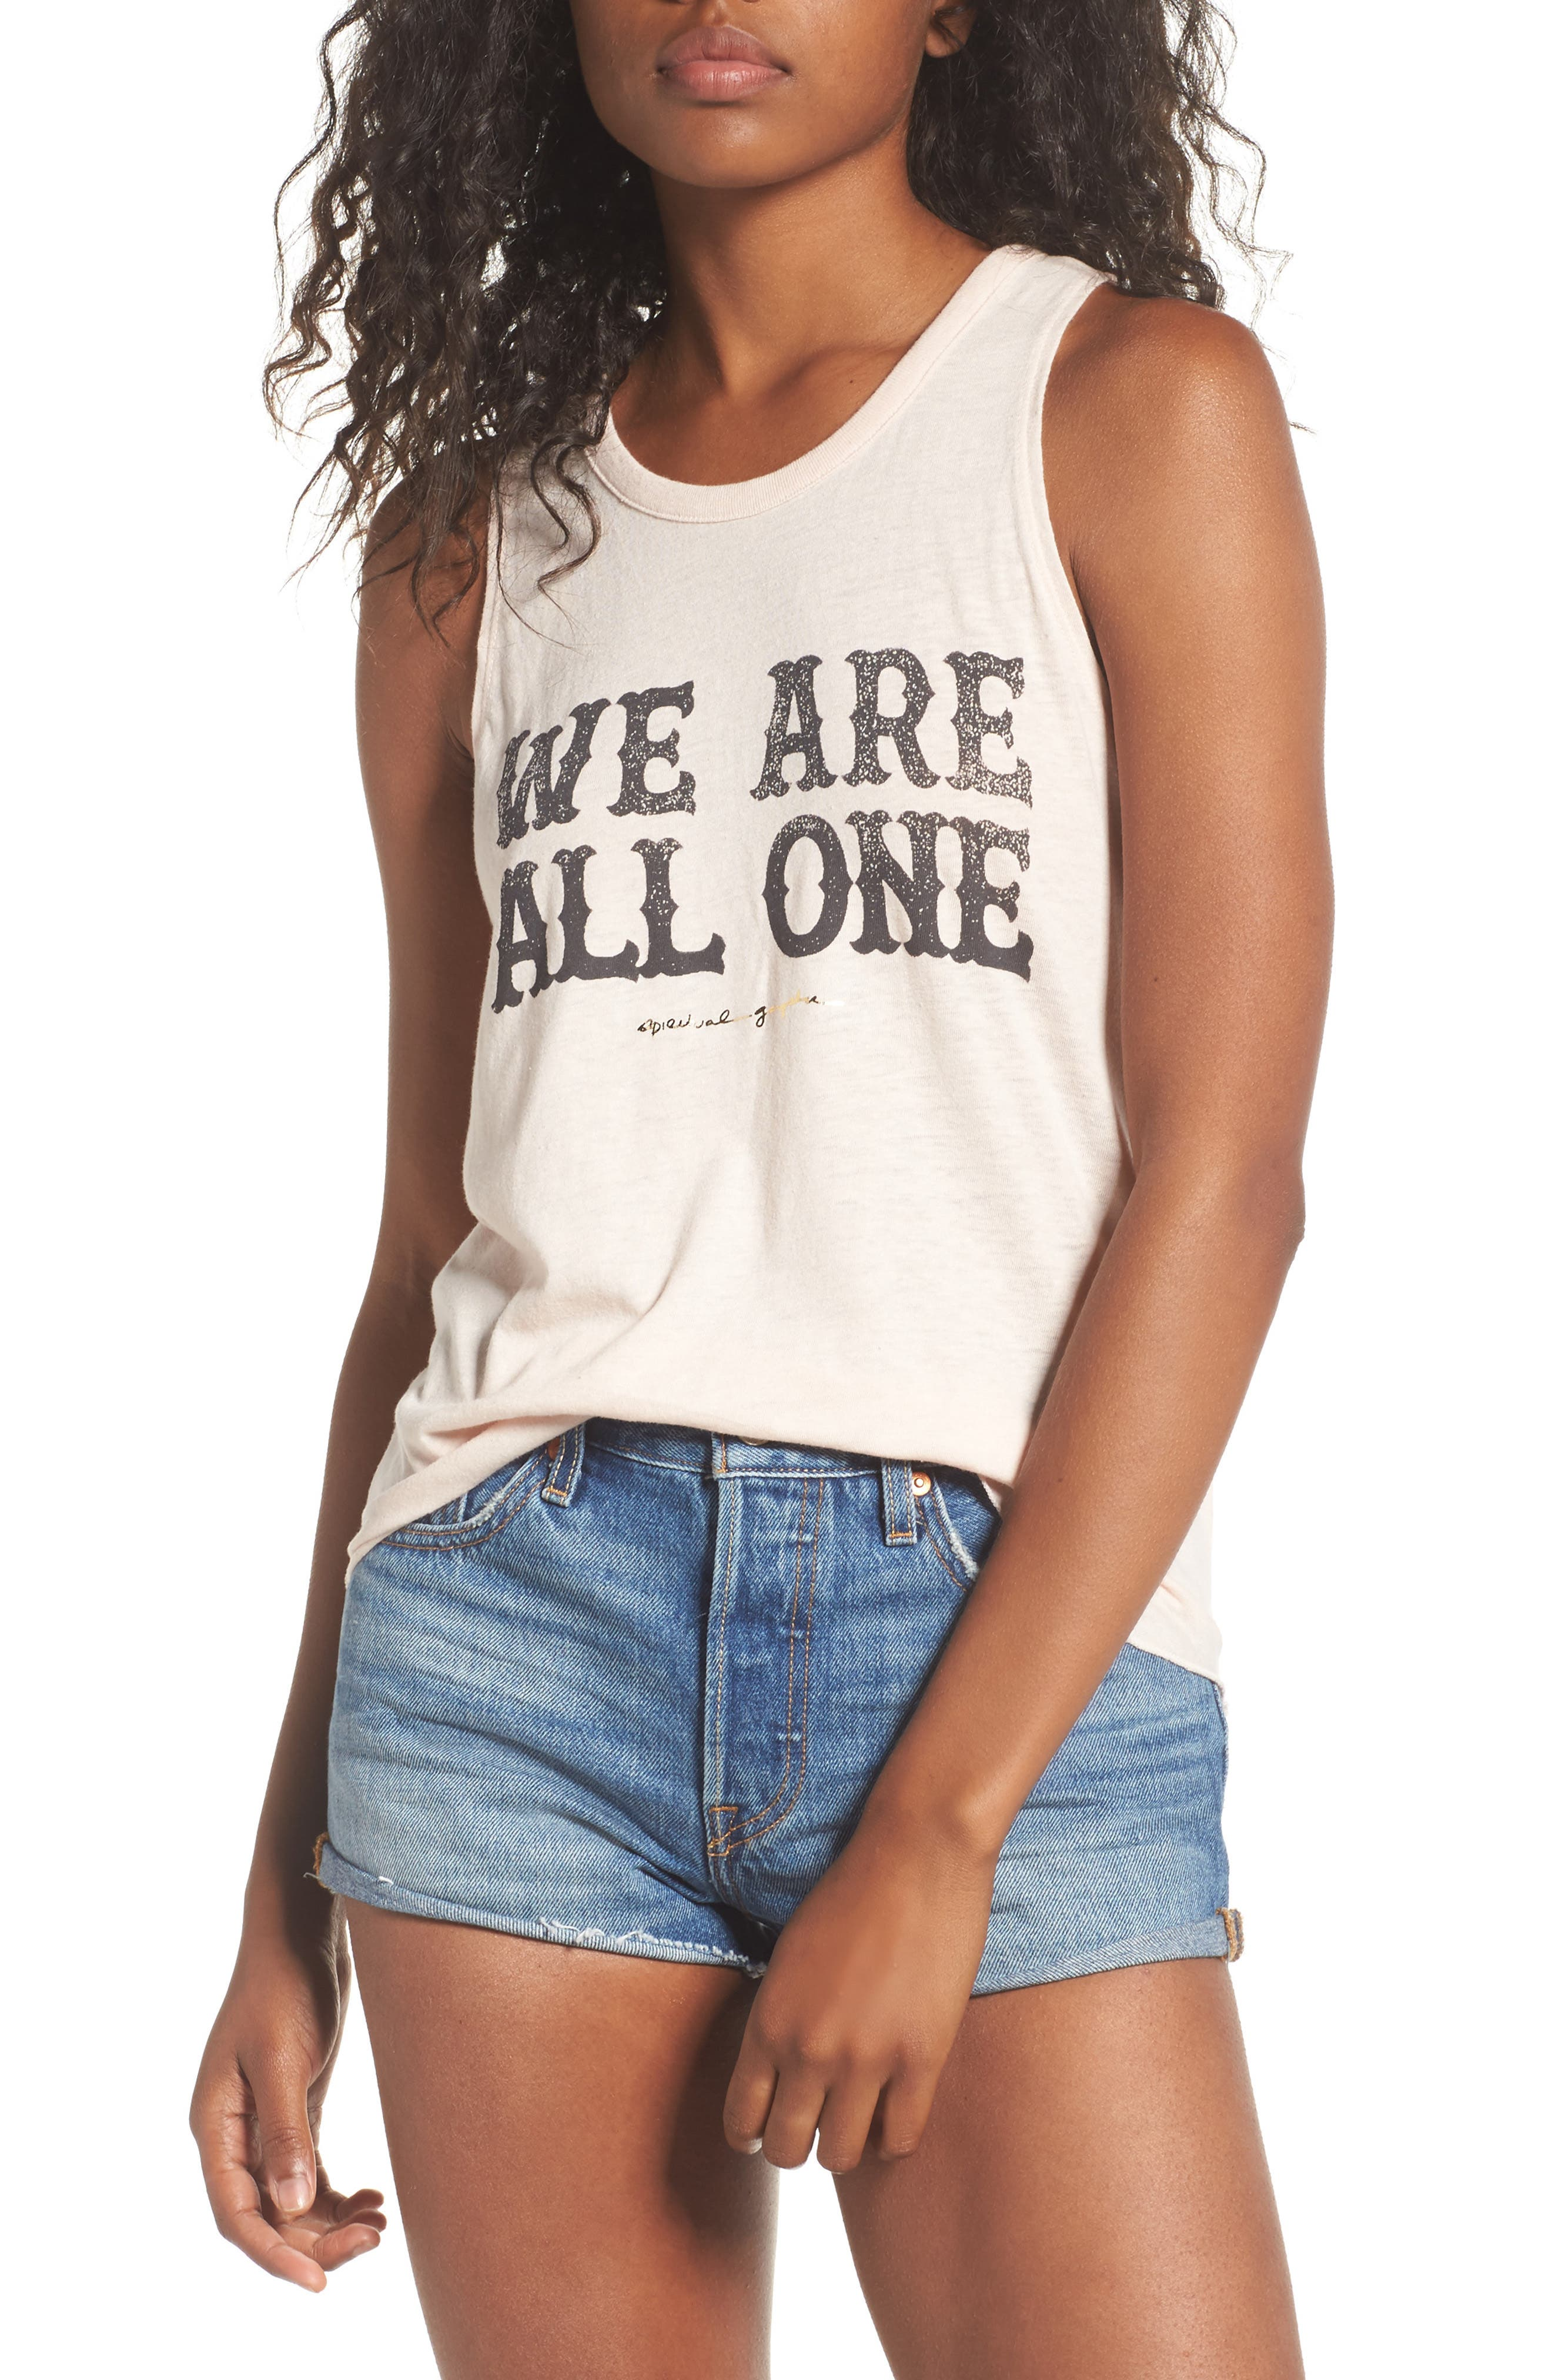 We Are One Studio Tank,                         Main,                         color, 900